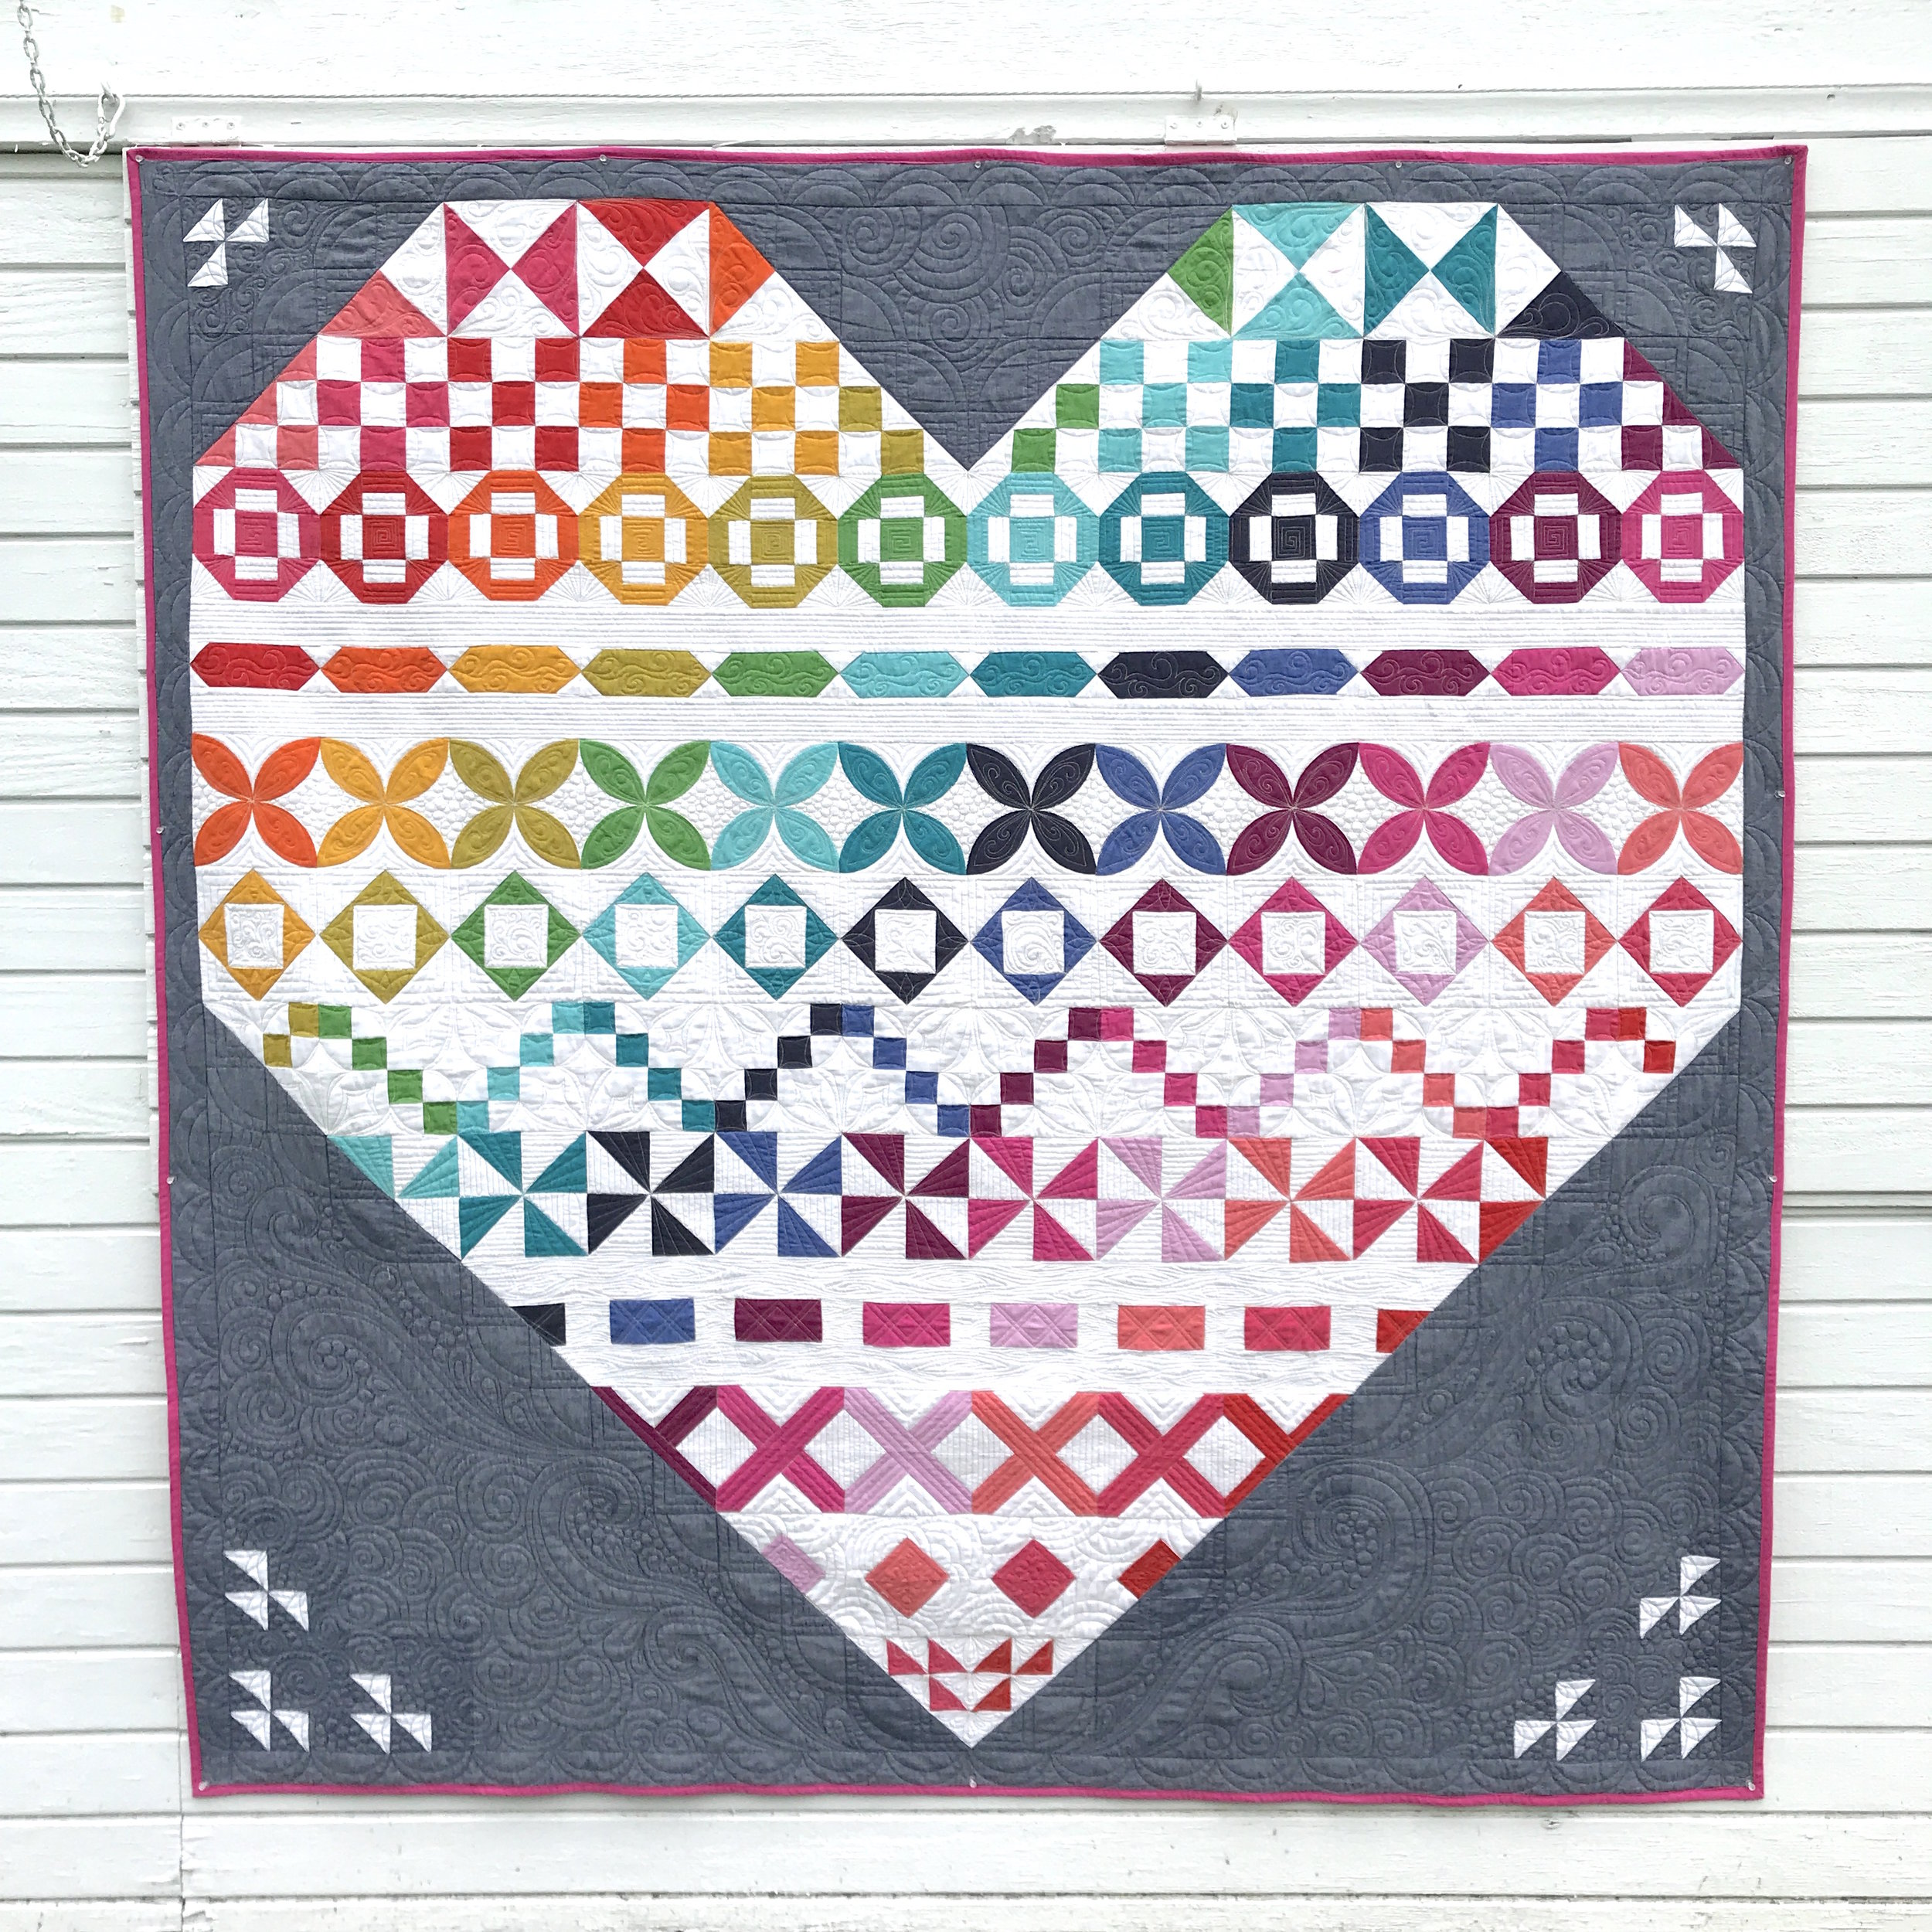 Conversation Sampler Row of the Month by AnneMarie Chany.JPG